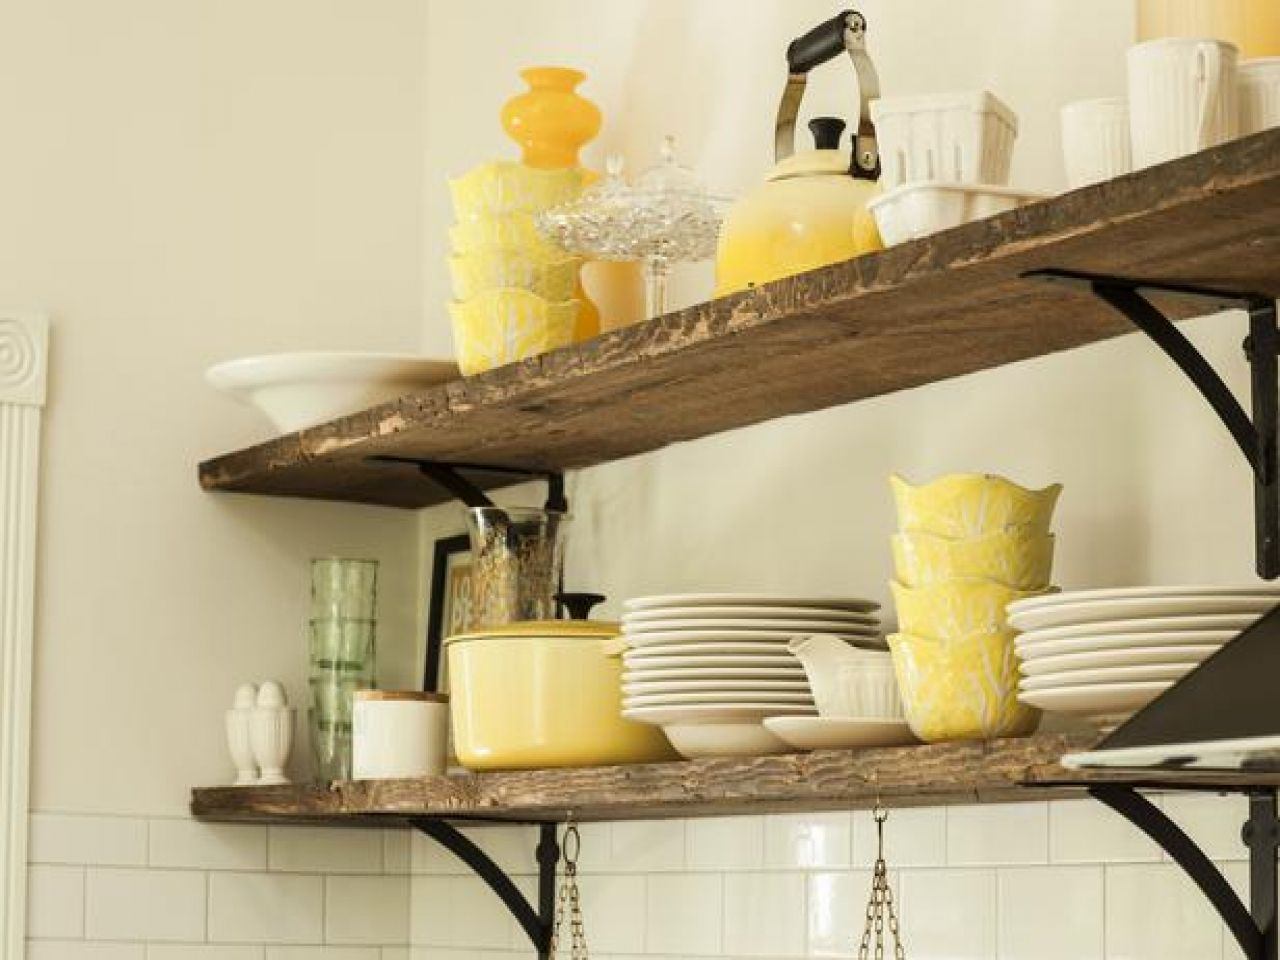 Marvelous Rustic Kitchen Shelving Ideas, Rustic White Kitchen Open Shelves